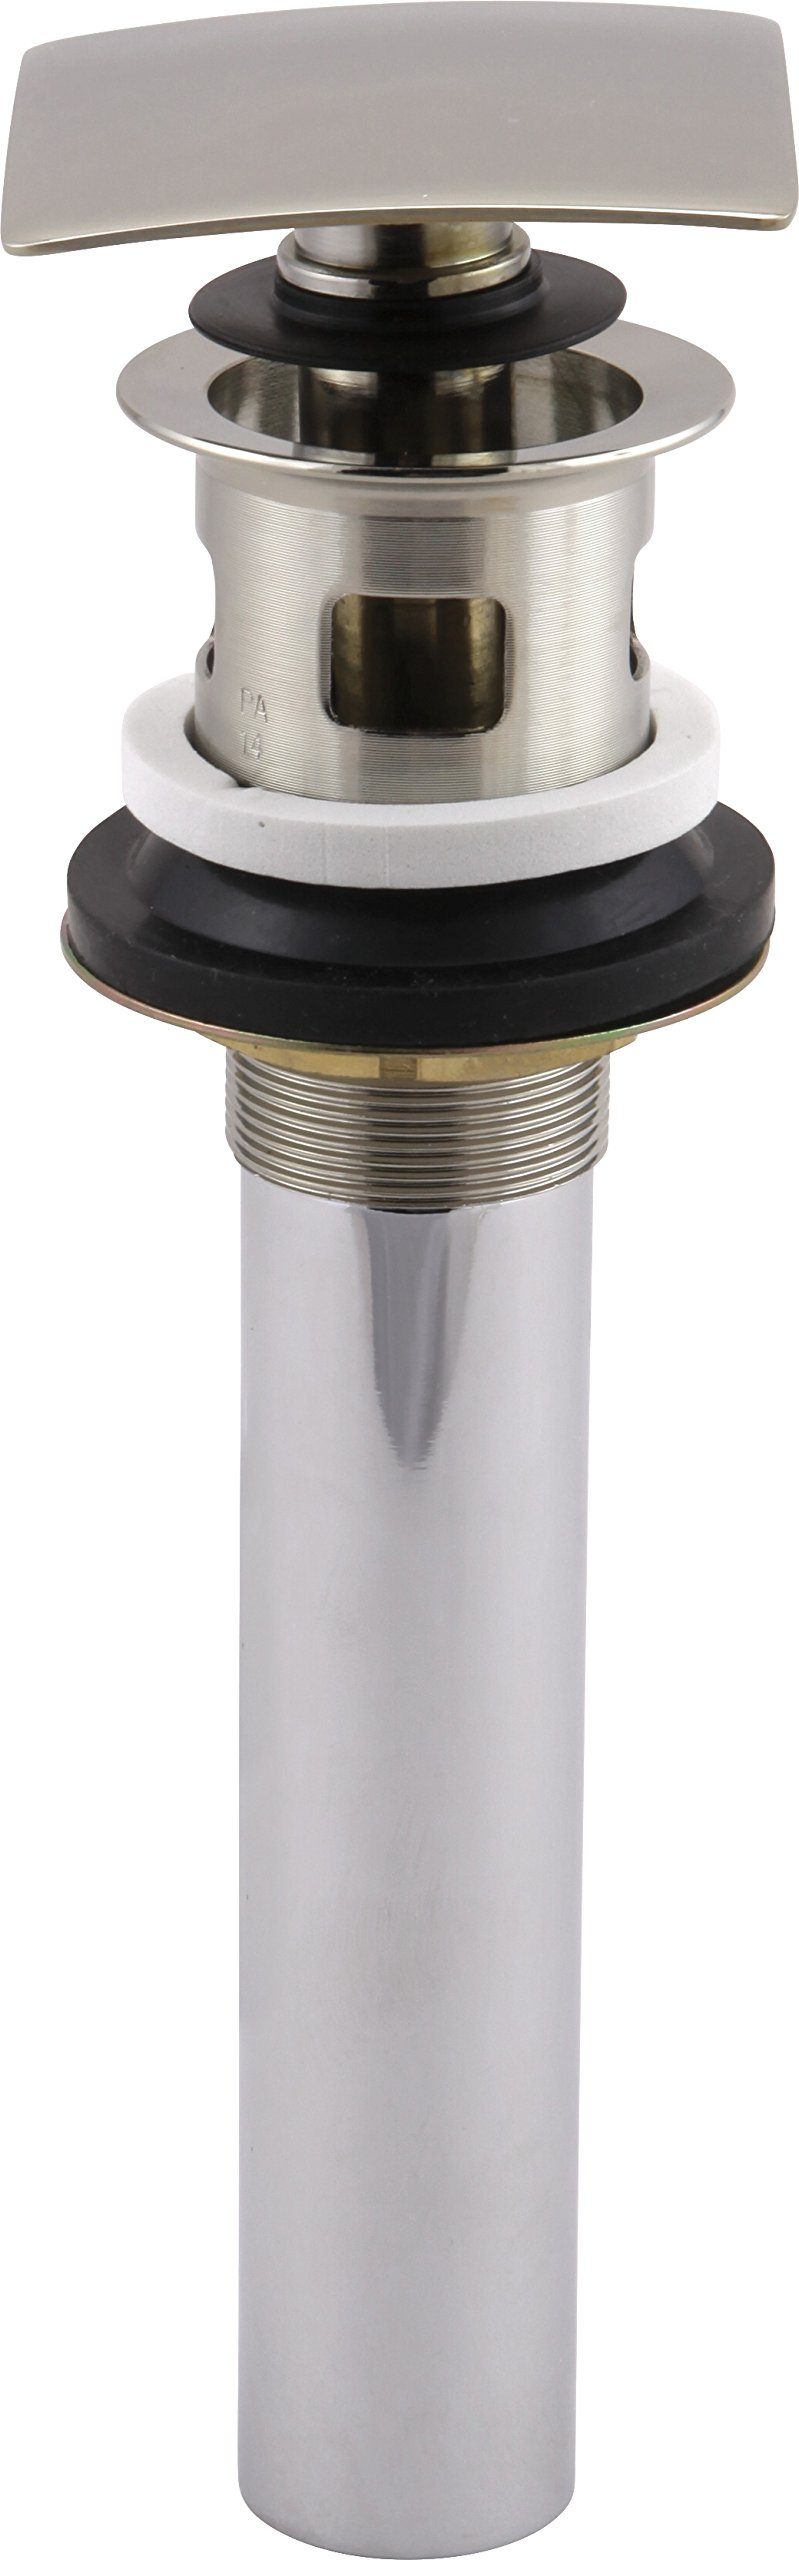 Delta 72175-PN Square Push Pop-Up Bathroom Sink Drain with Overflow, Polished Nickel